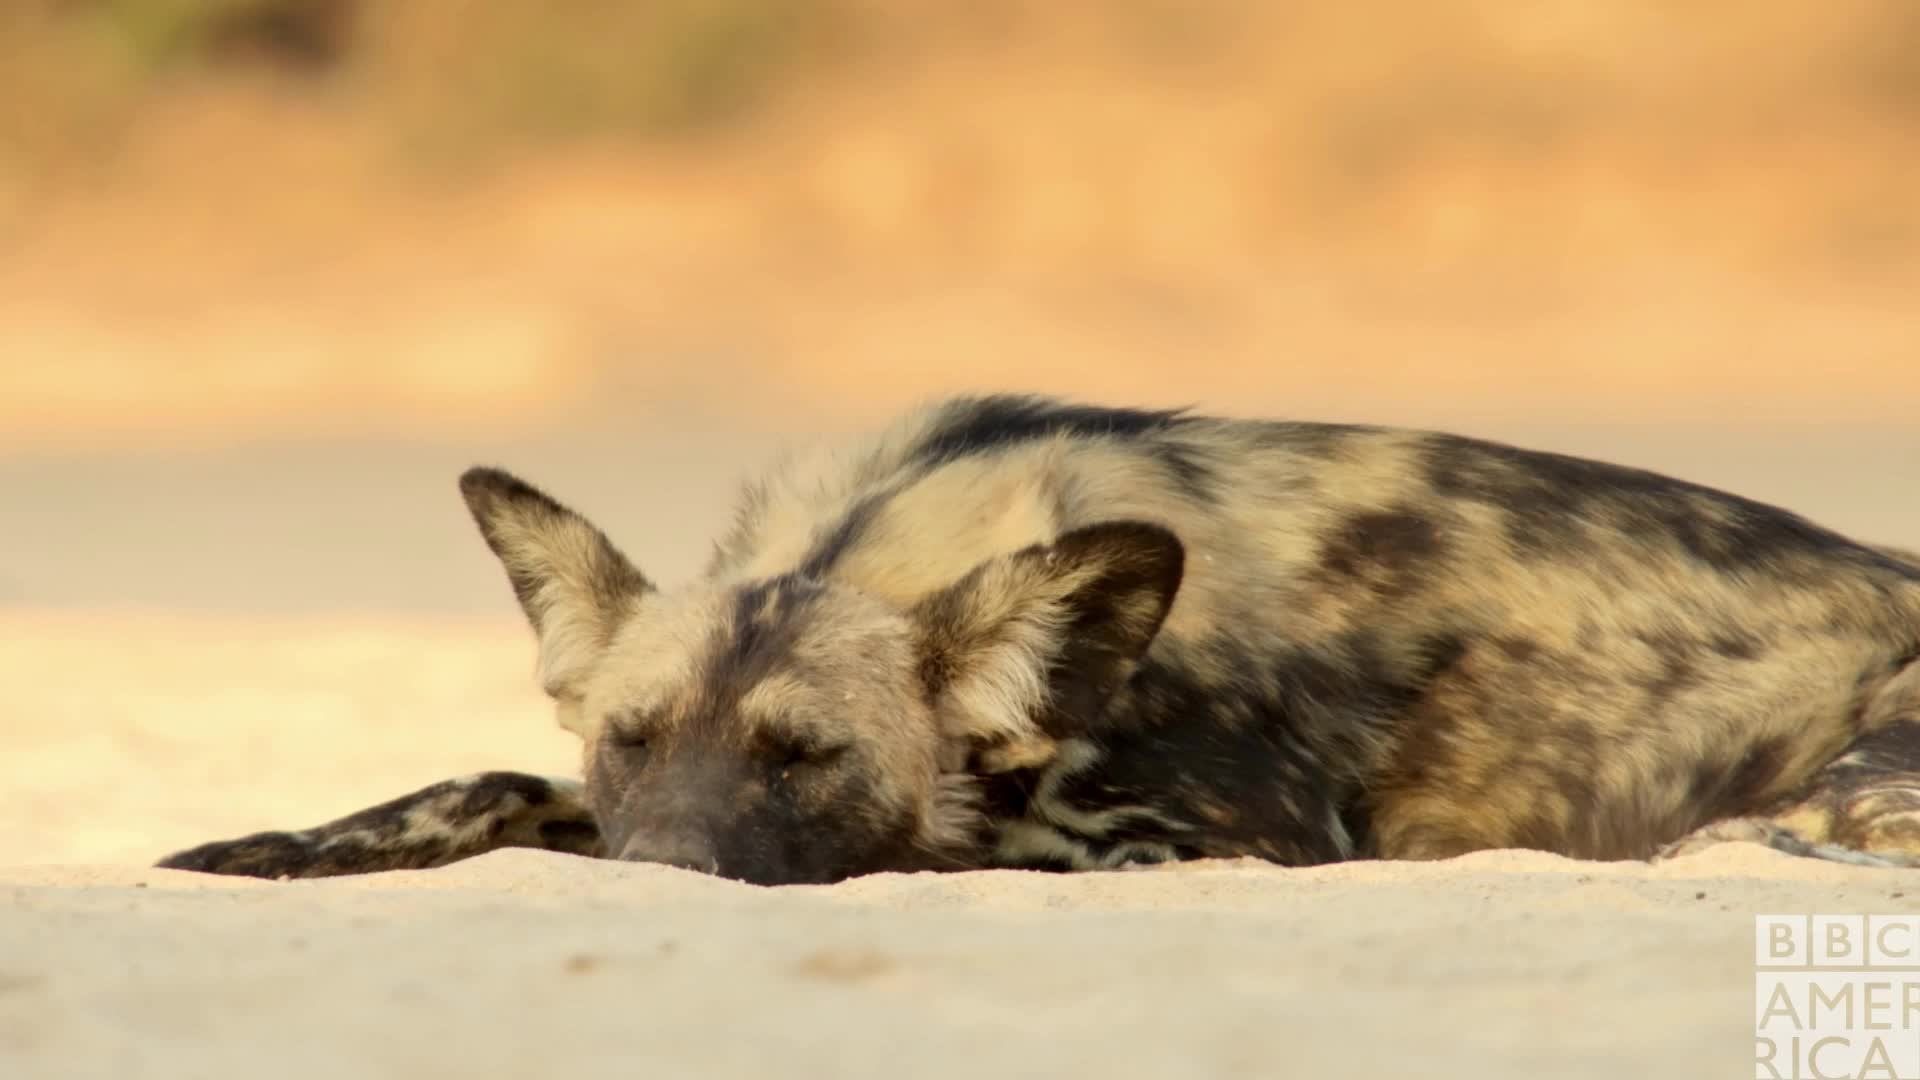 animal, animals, bbc america, bbc america dynasties, bbc america: dynasties, dynasties, lazy, painted wolf, painted wolves, sleeping, tired, wolf, wolves, zzz, Dynasties Sleeping Wolf GIFs